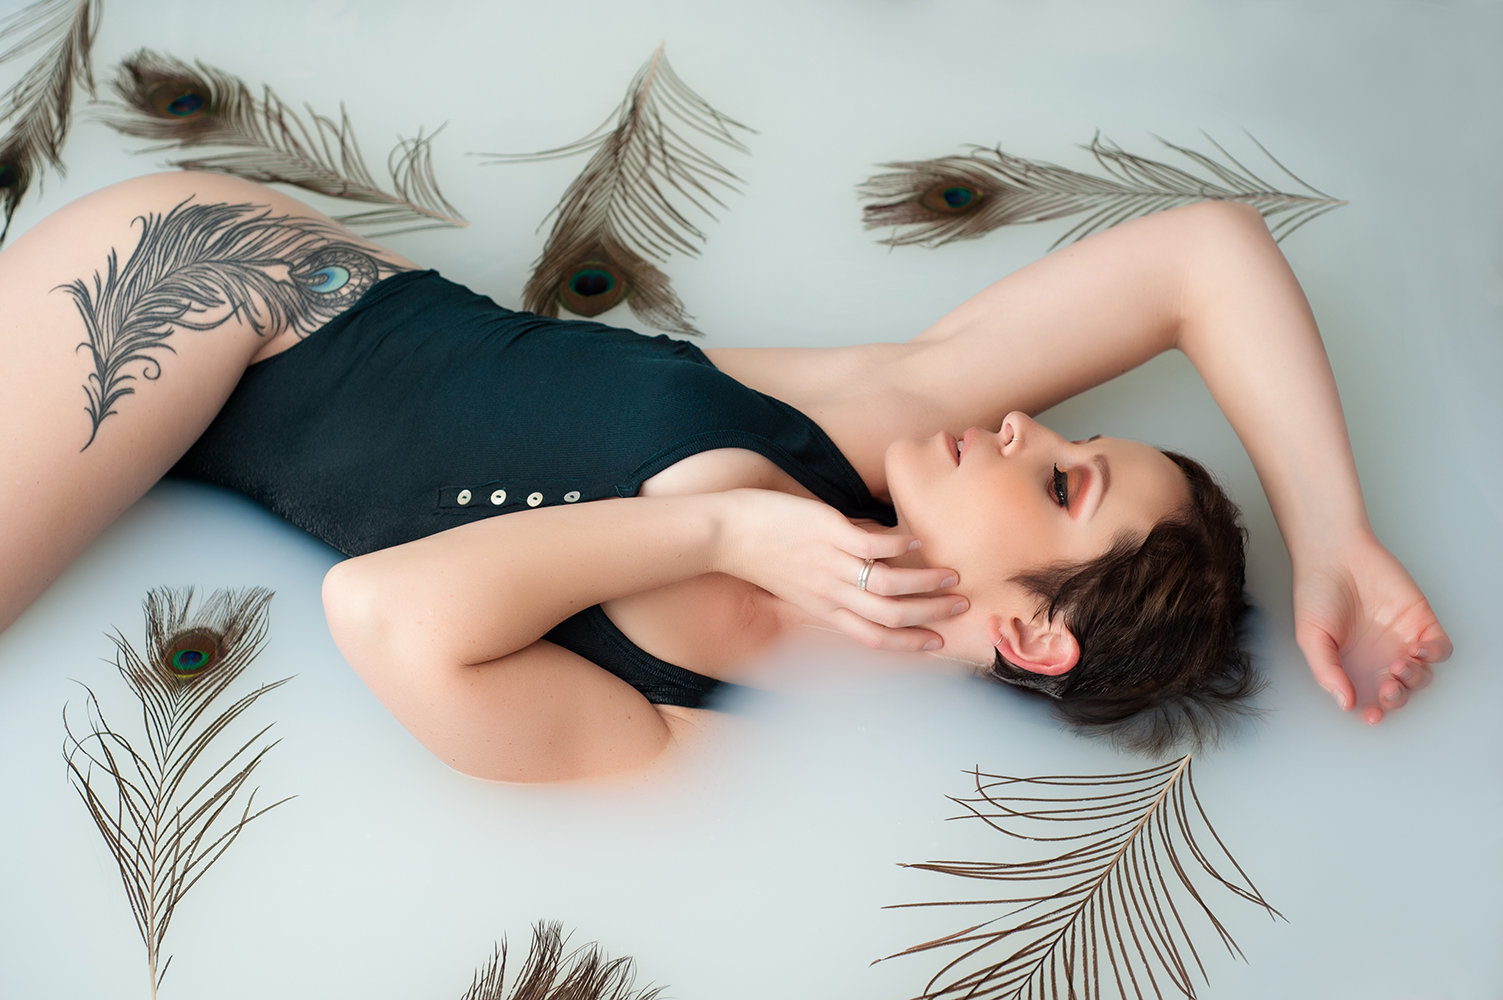 denver-fine-art-boudoir-peacock-feather-milk-bath-melissa-mullins